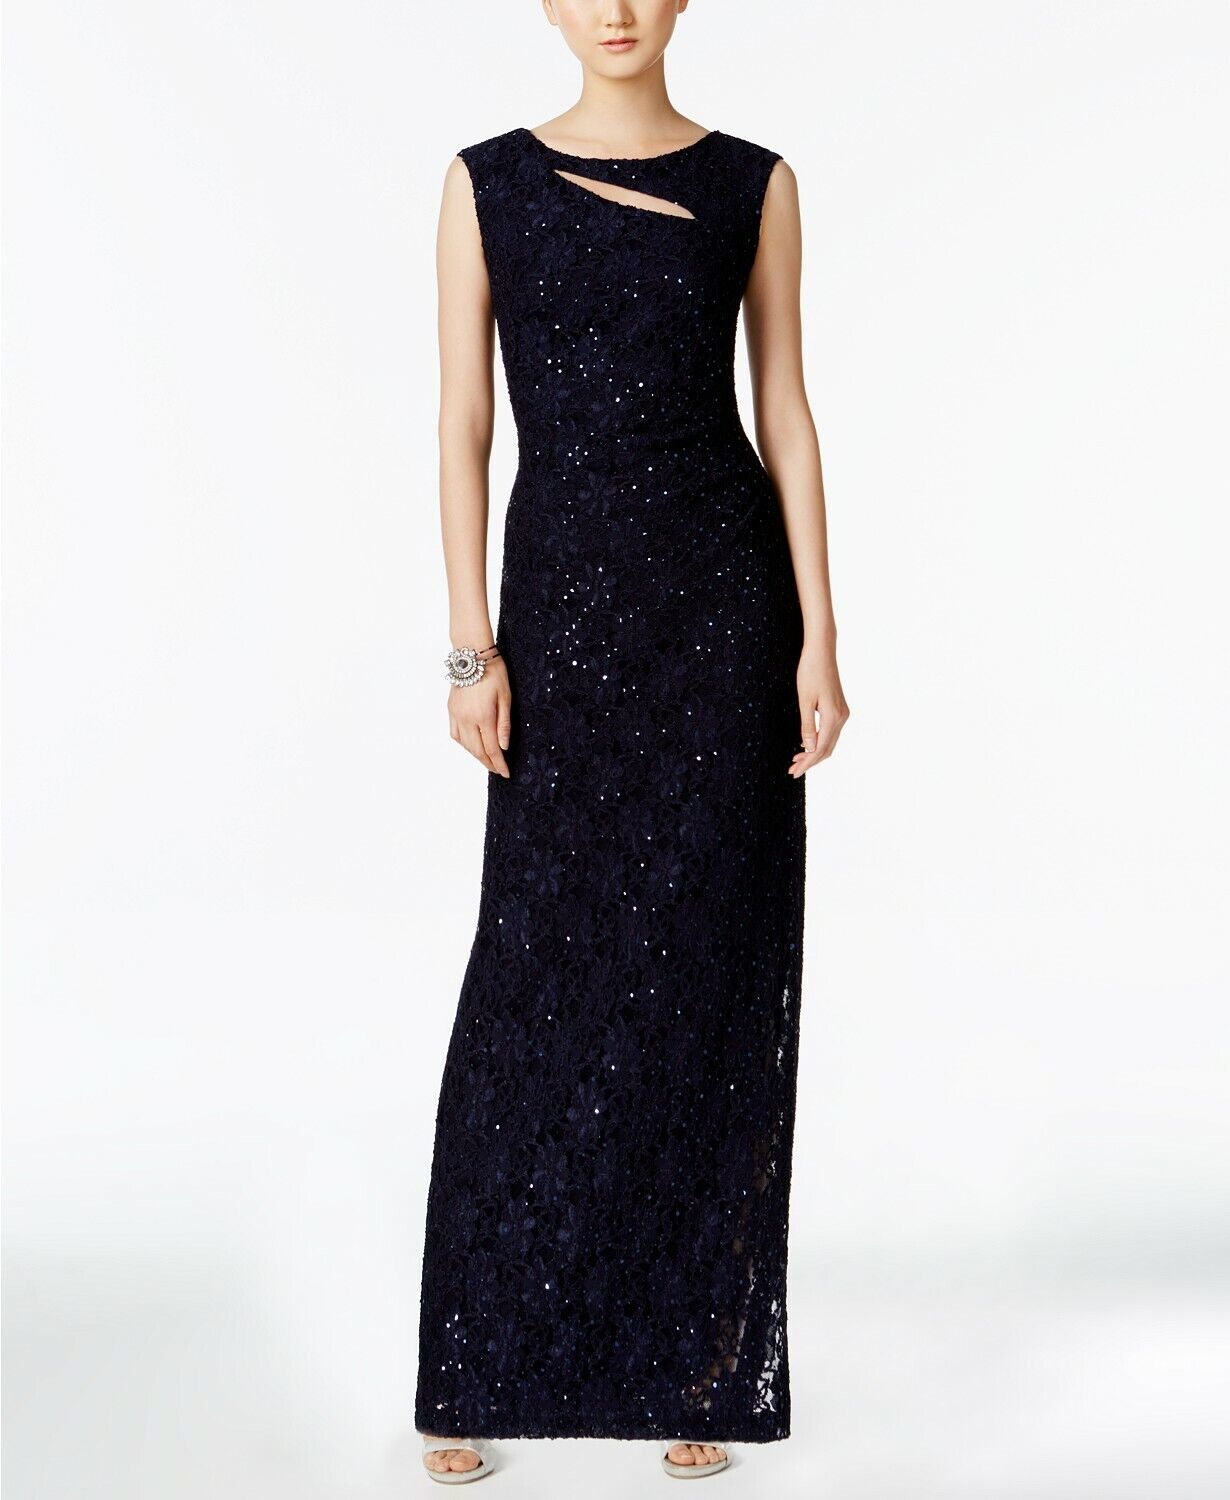 286 CONNECTED WOMEN'S blueE CUTOUT SEQUINED SLEEVELESS LACE GOWN DRESS SIZE 14